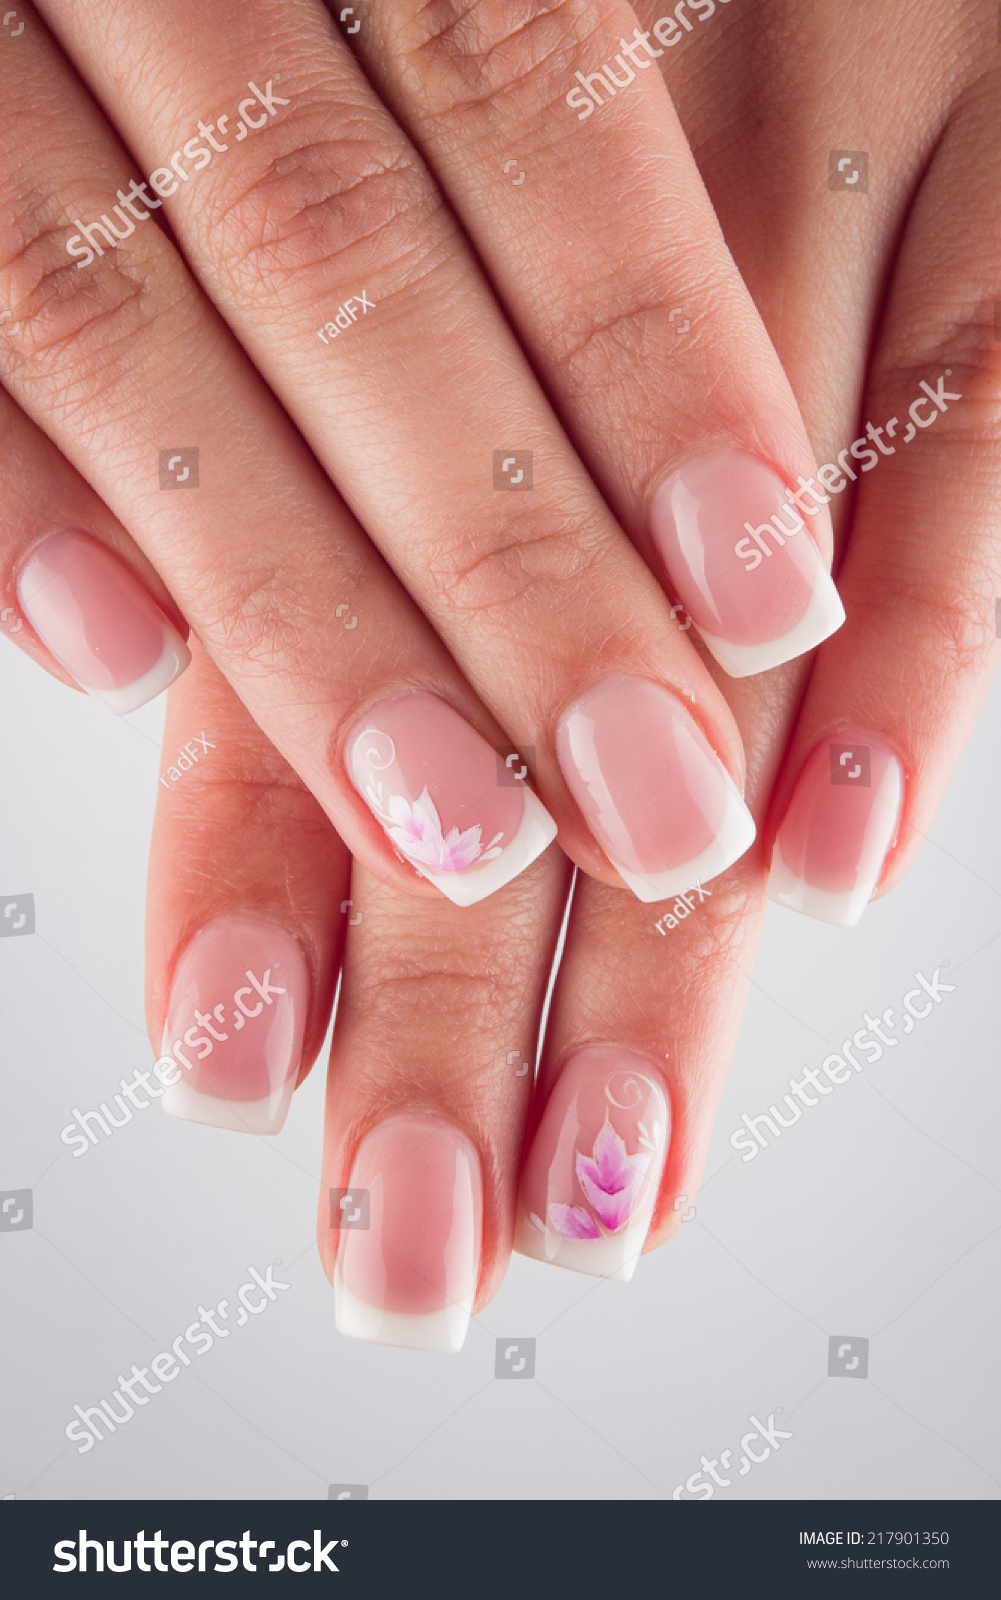 Painted Nails Flowers Hands Isolated On Stock Photo 217901350 ...